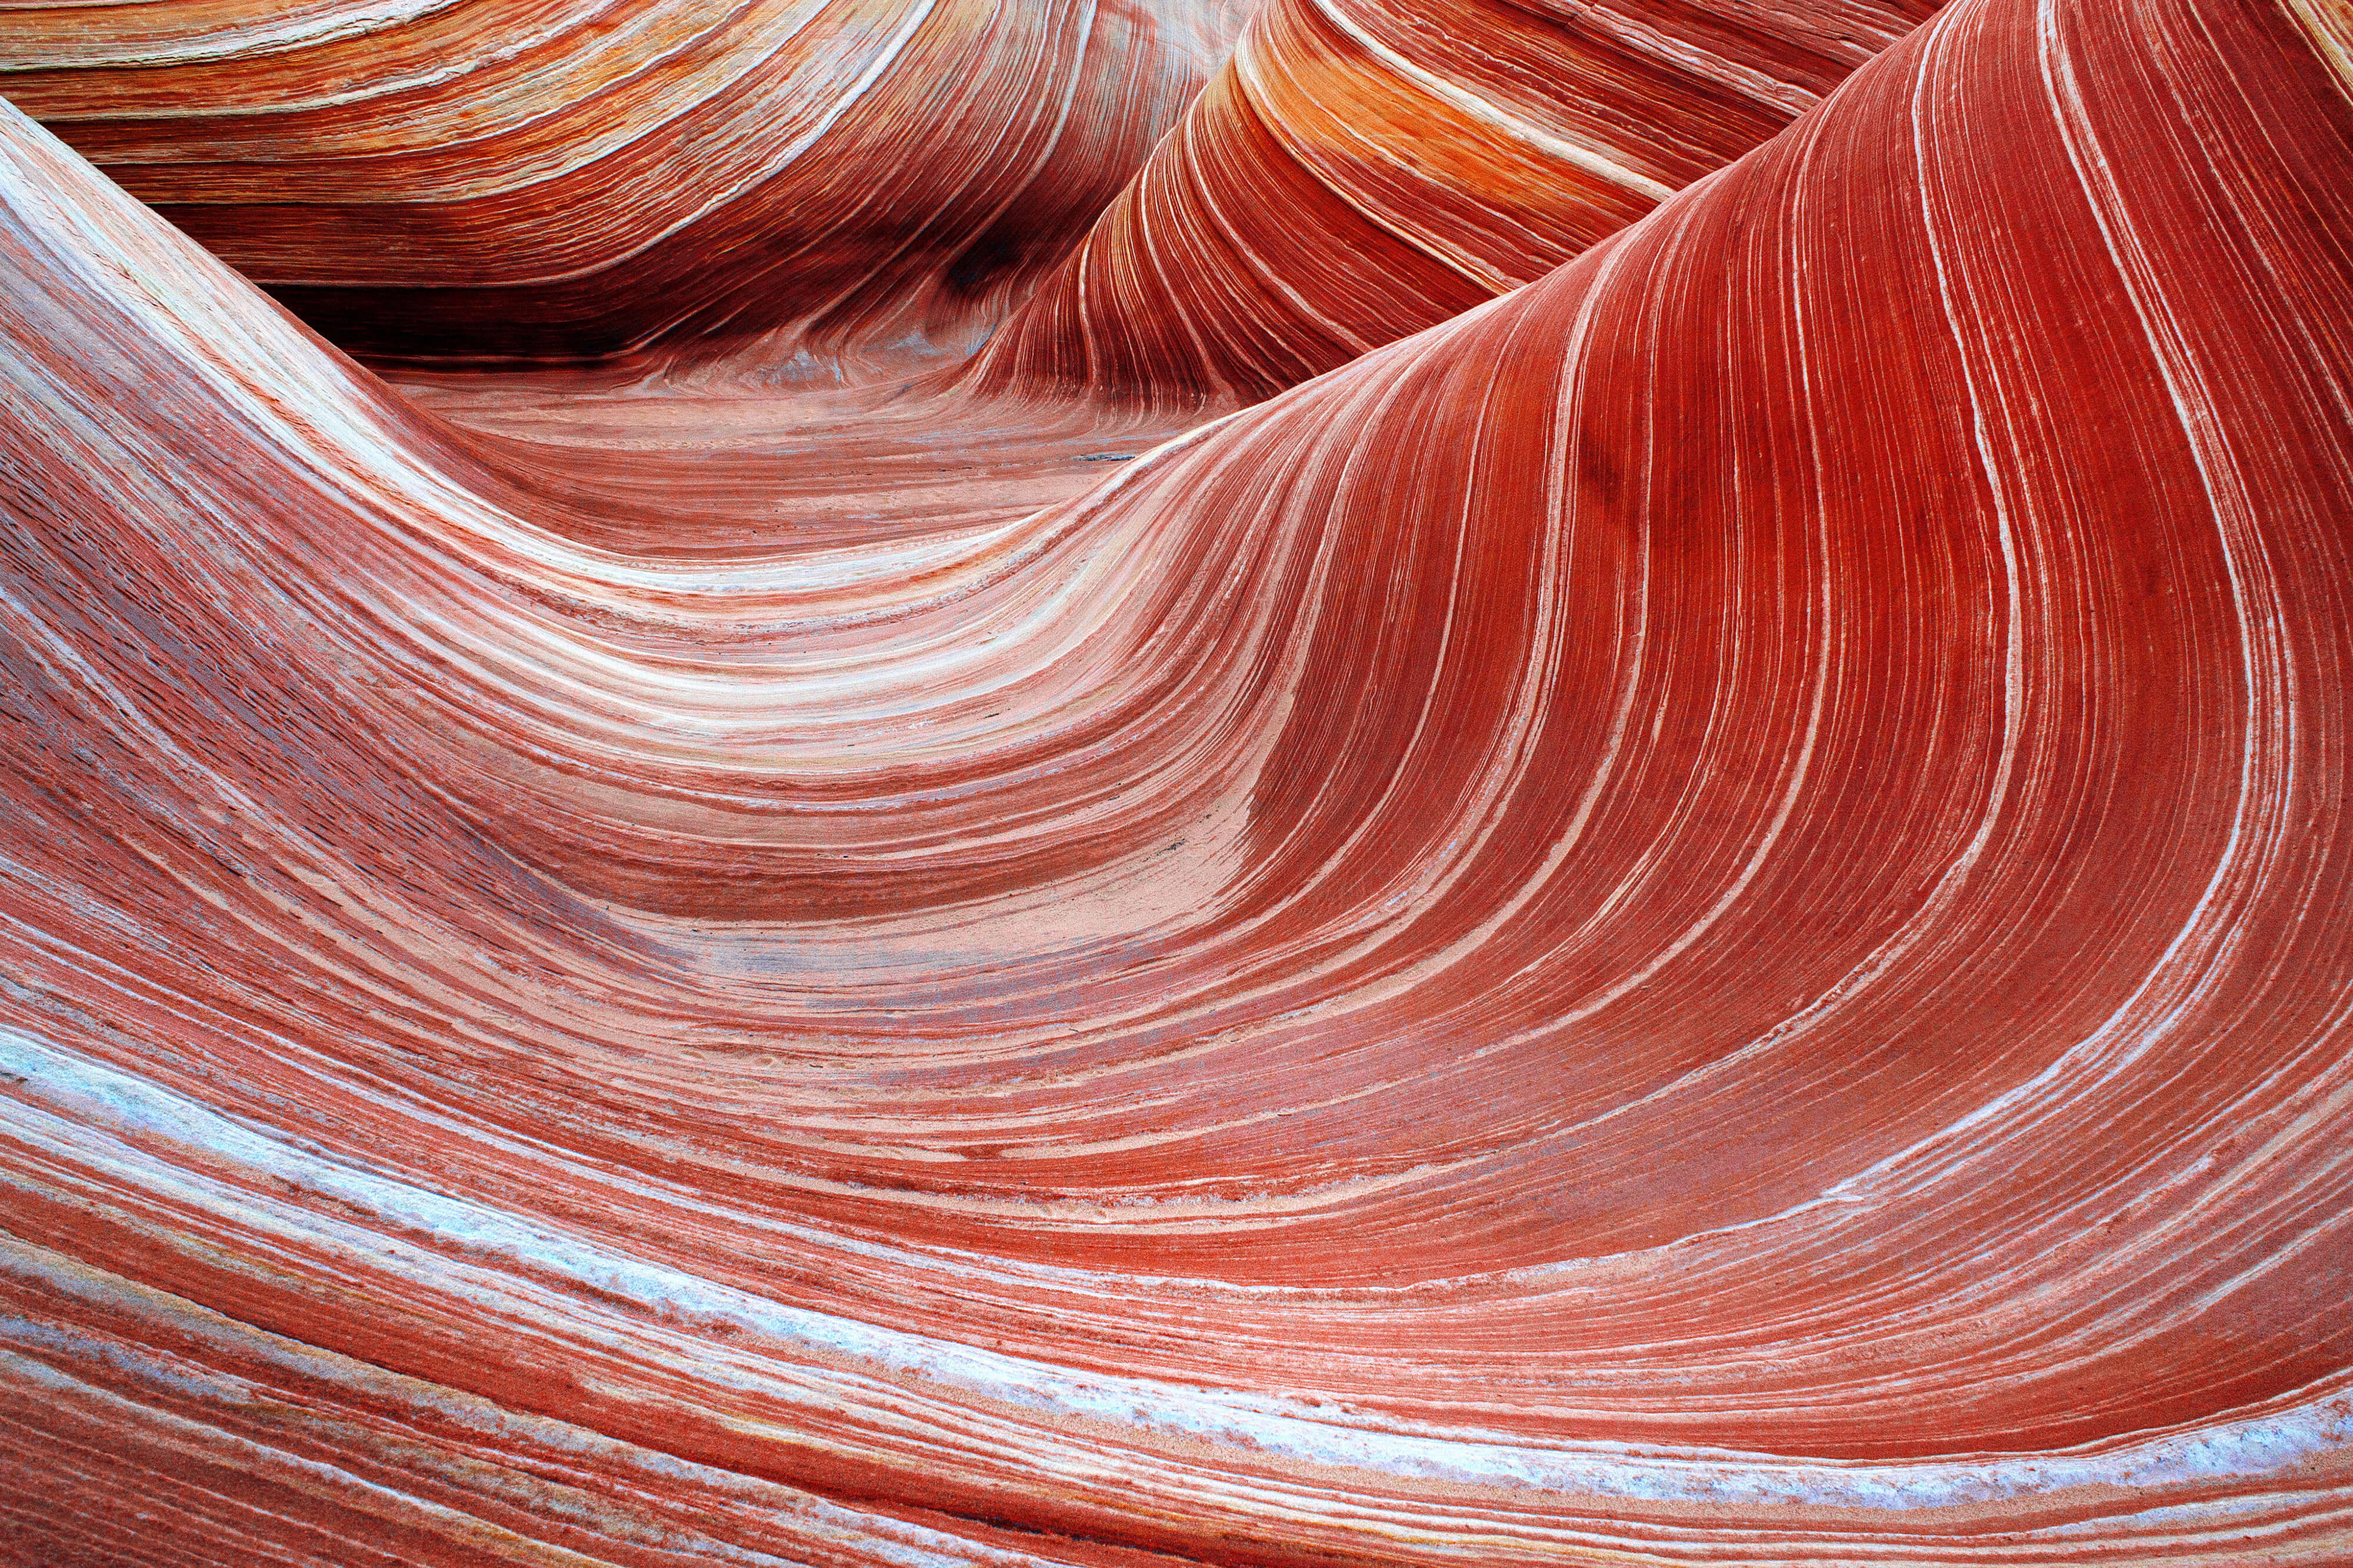 The Wave and North Coyote Buttes